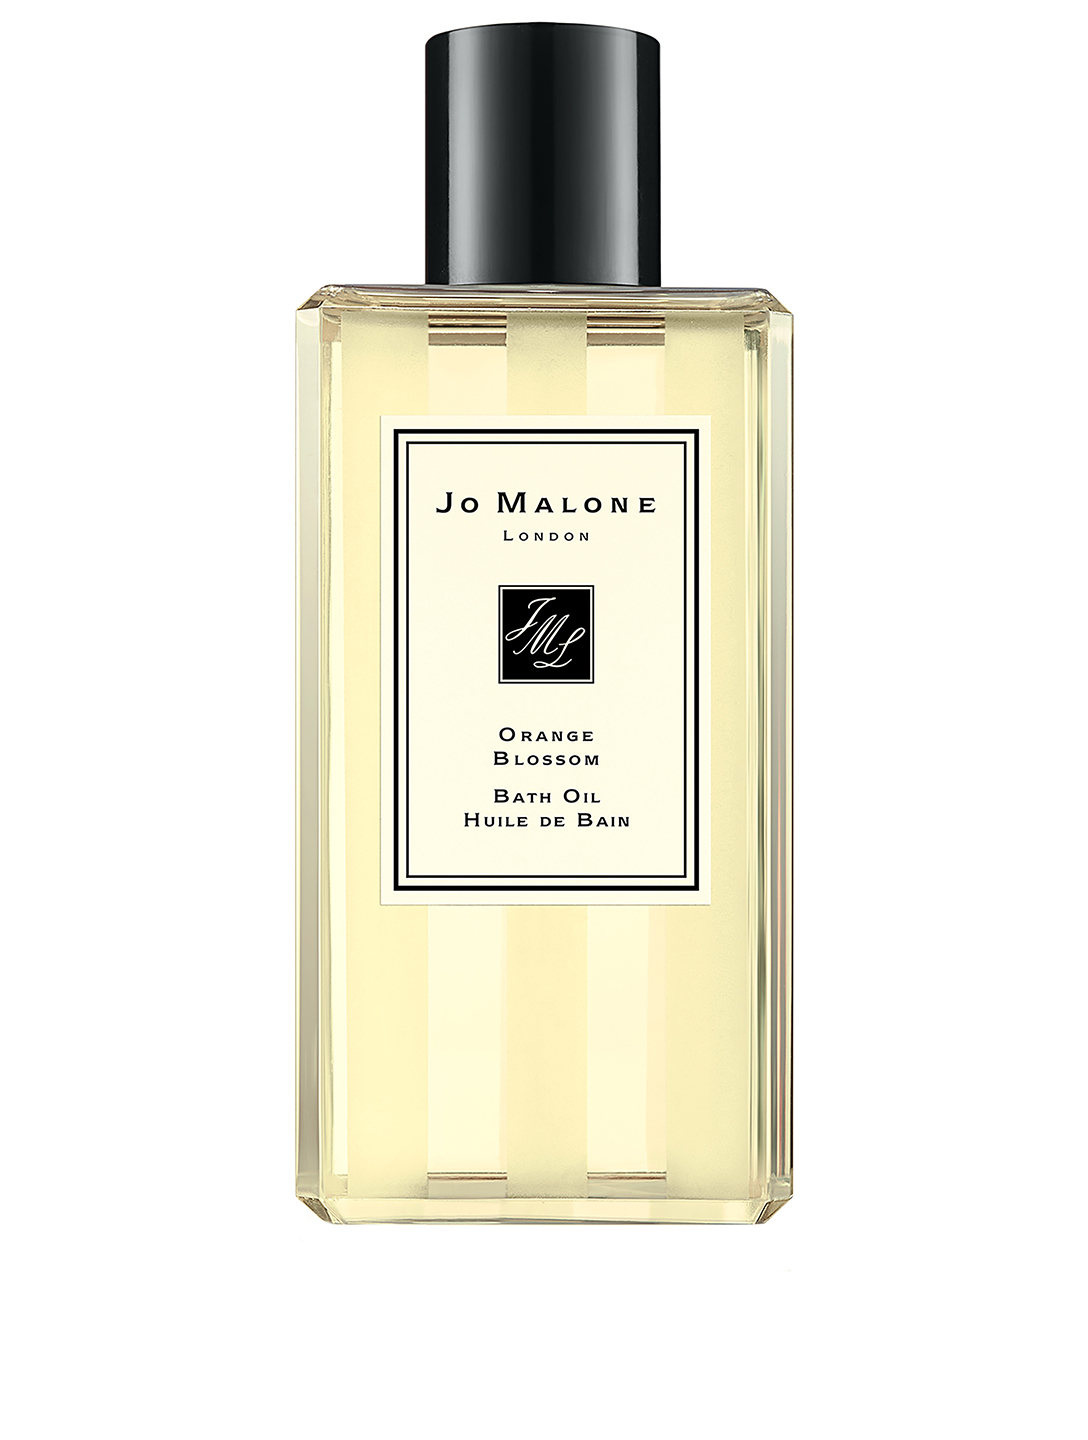 JO MALONE LONDON Orange Blossom Bath Oil Beauty